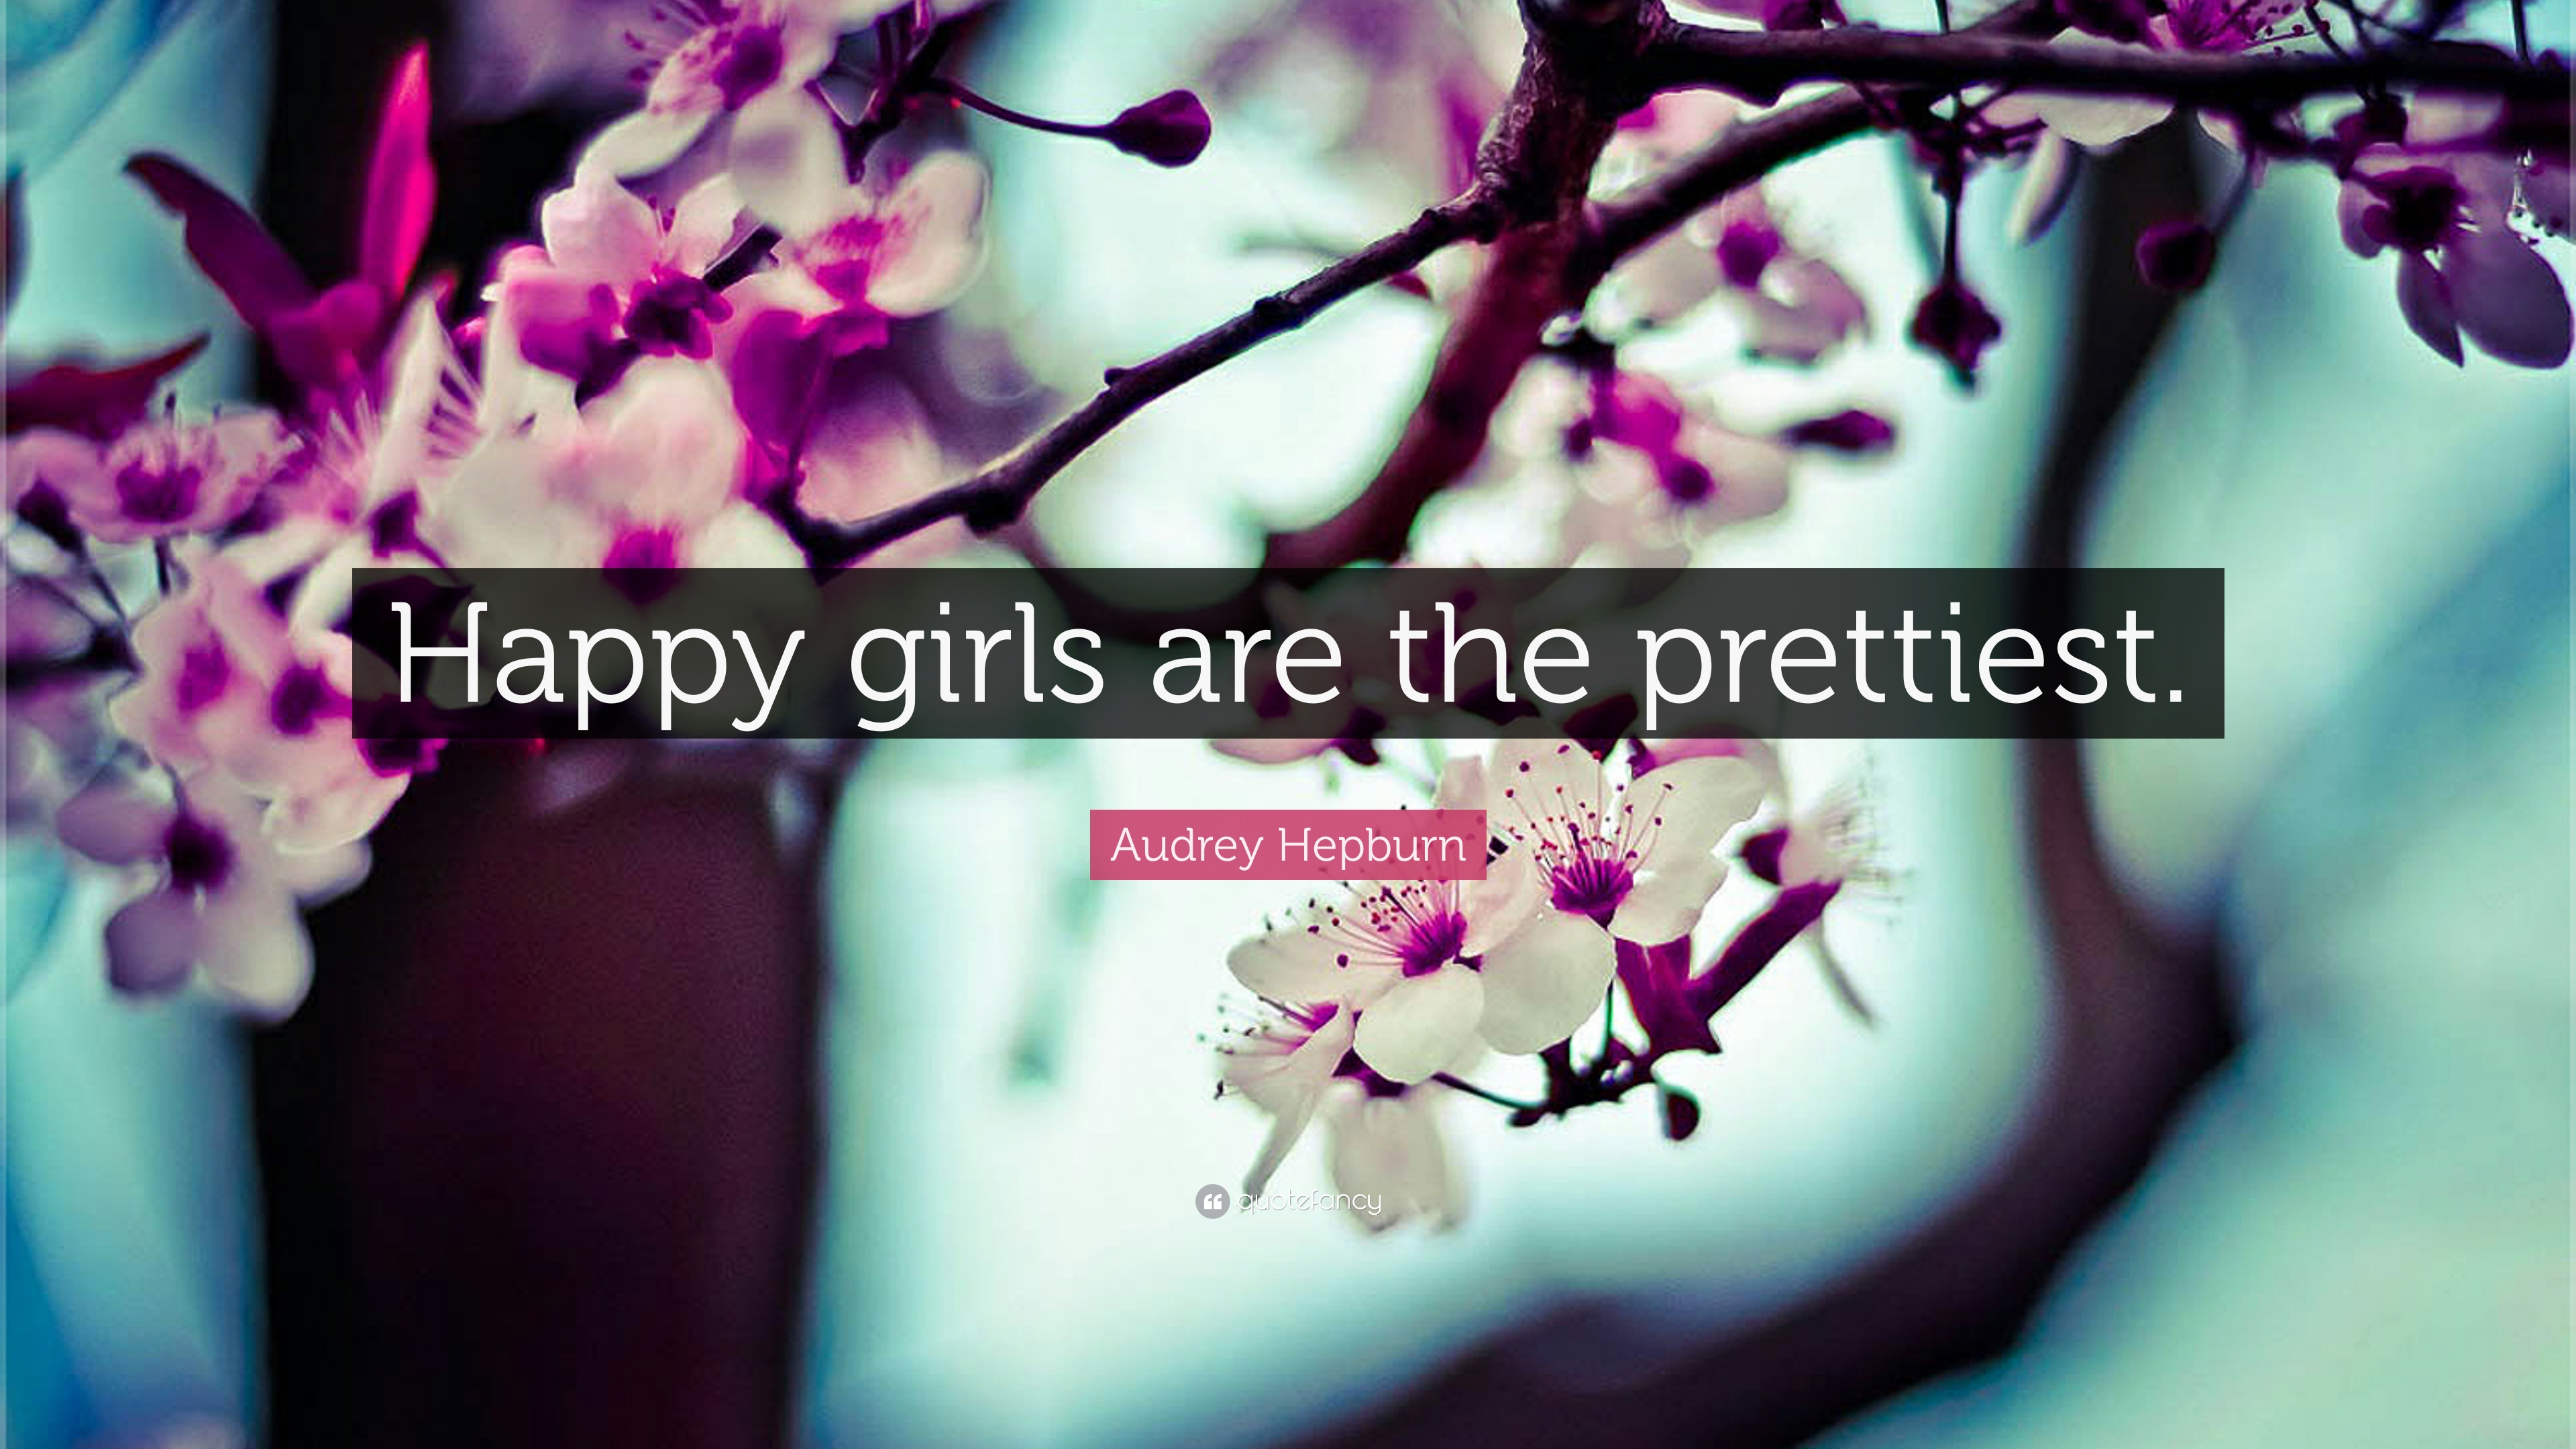 Audrey Hepburn Quote - If You Have Only One Smile - HD Wallpaper